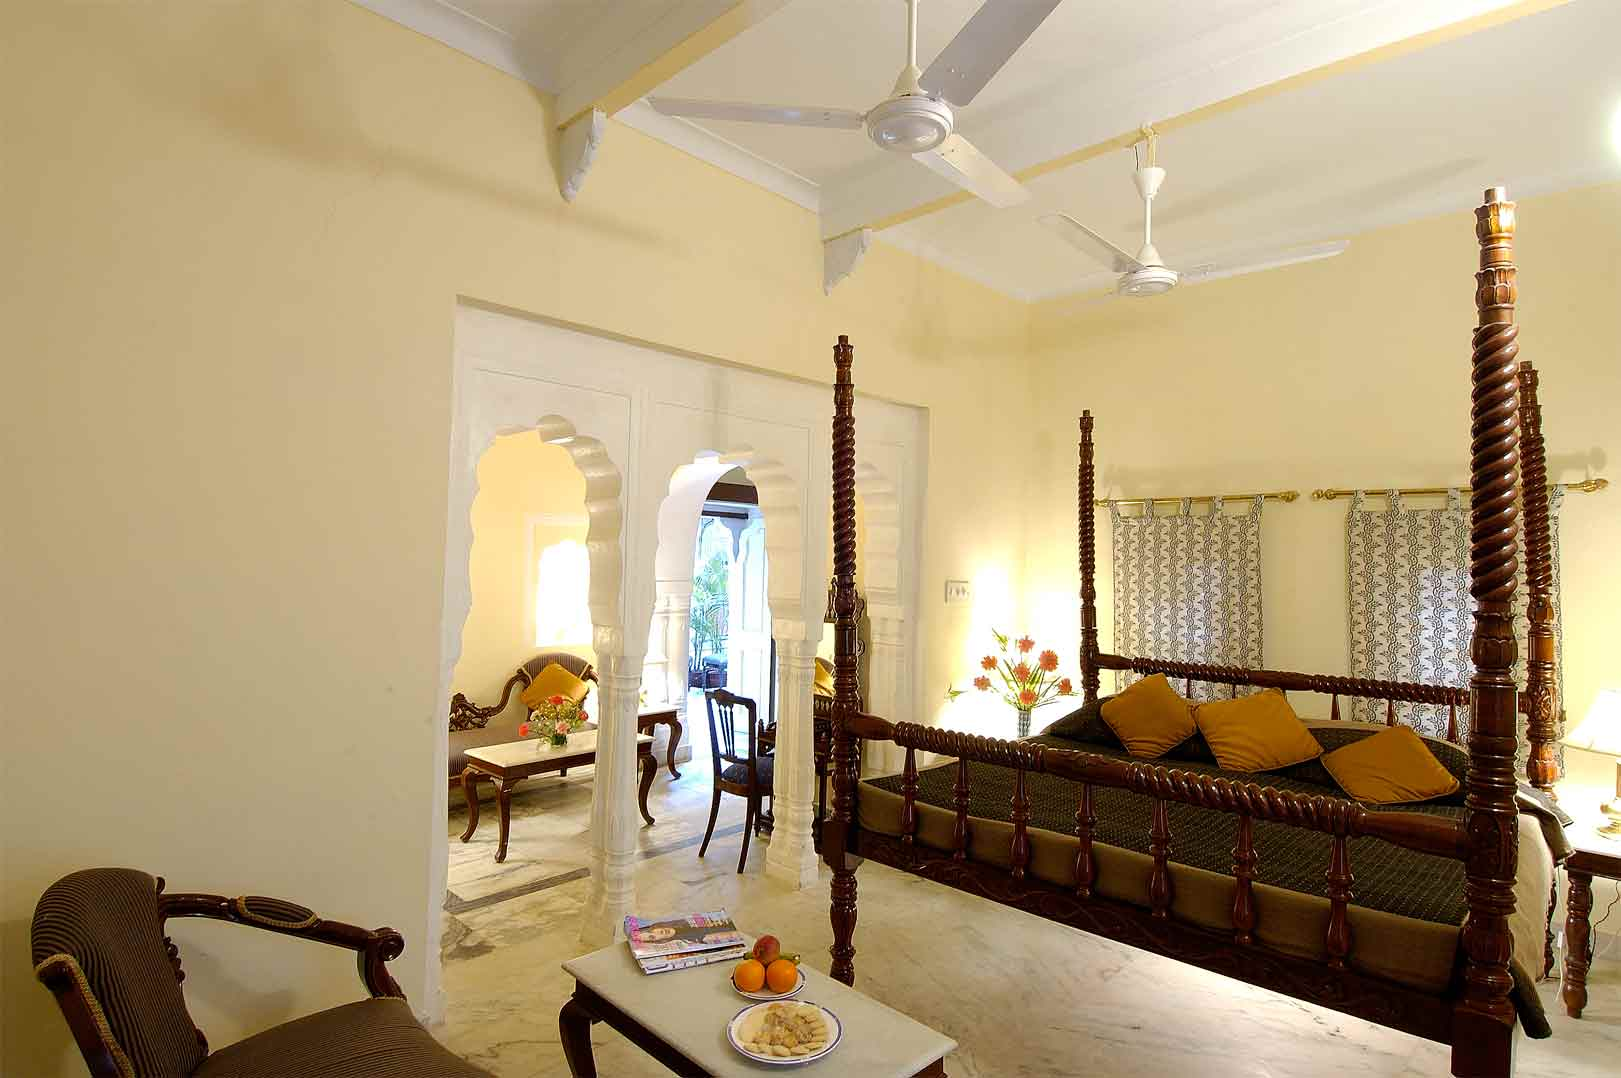 Luxury Hotel in Rajasthan